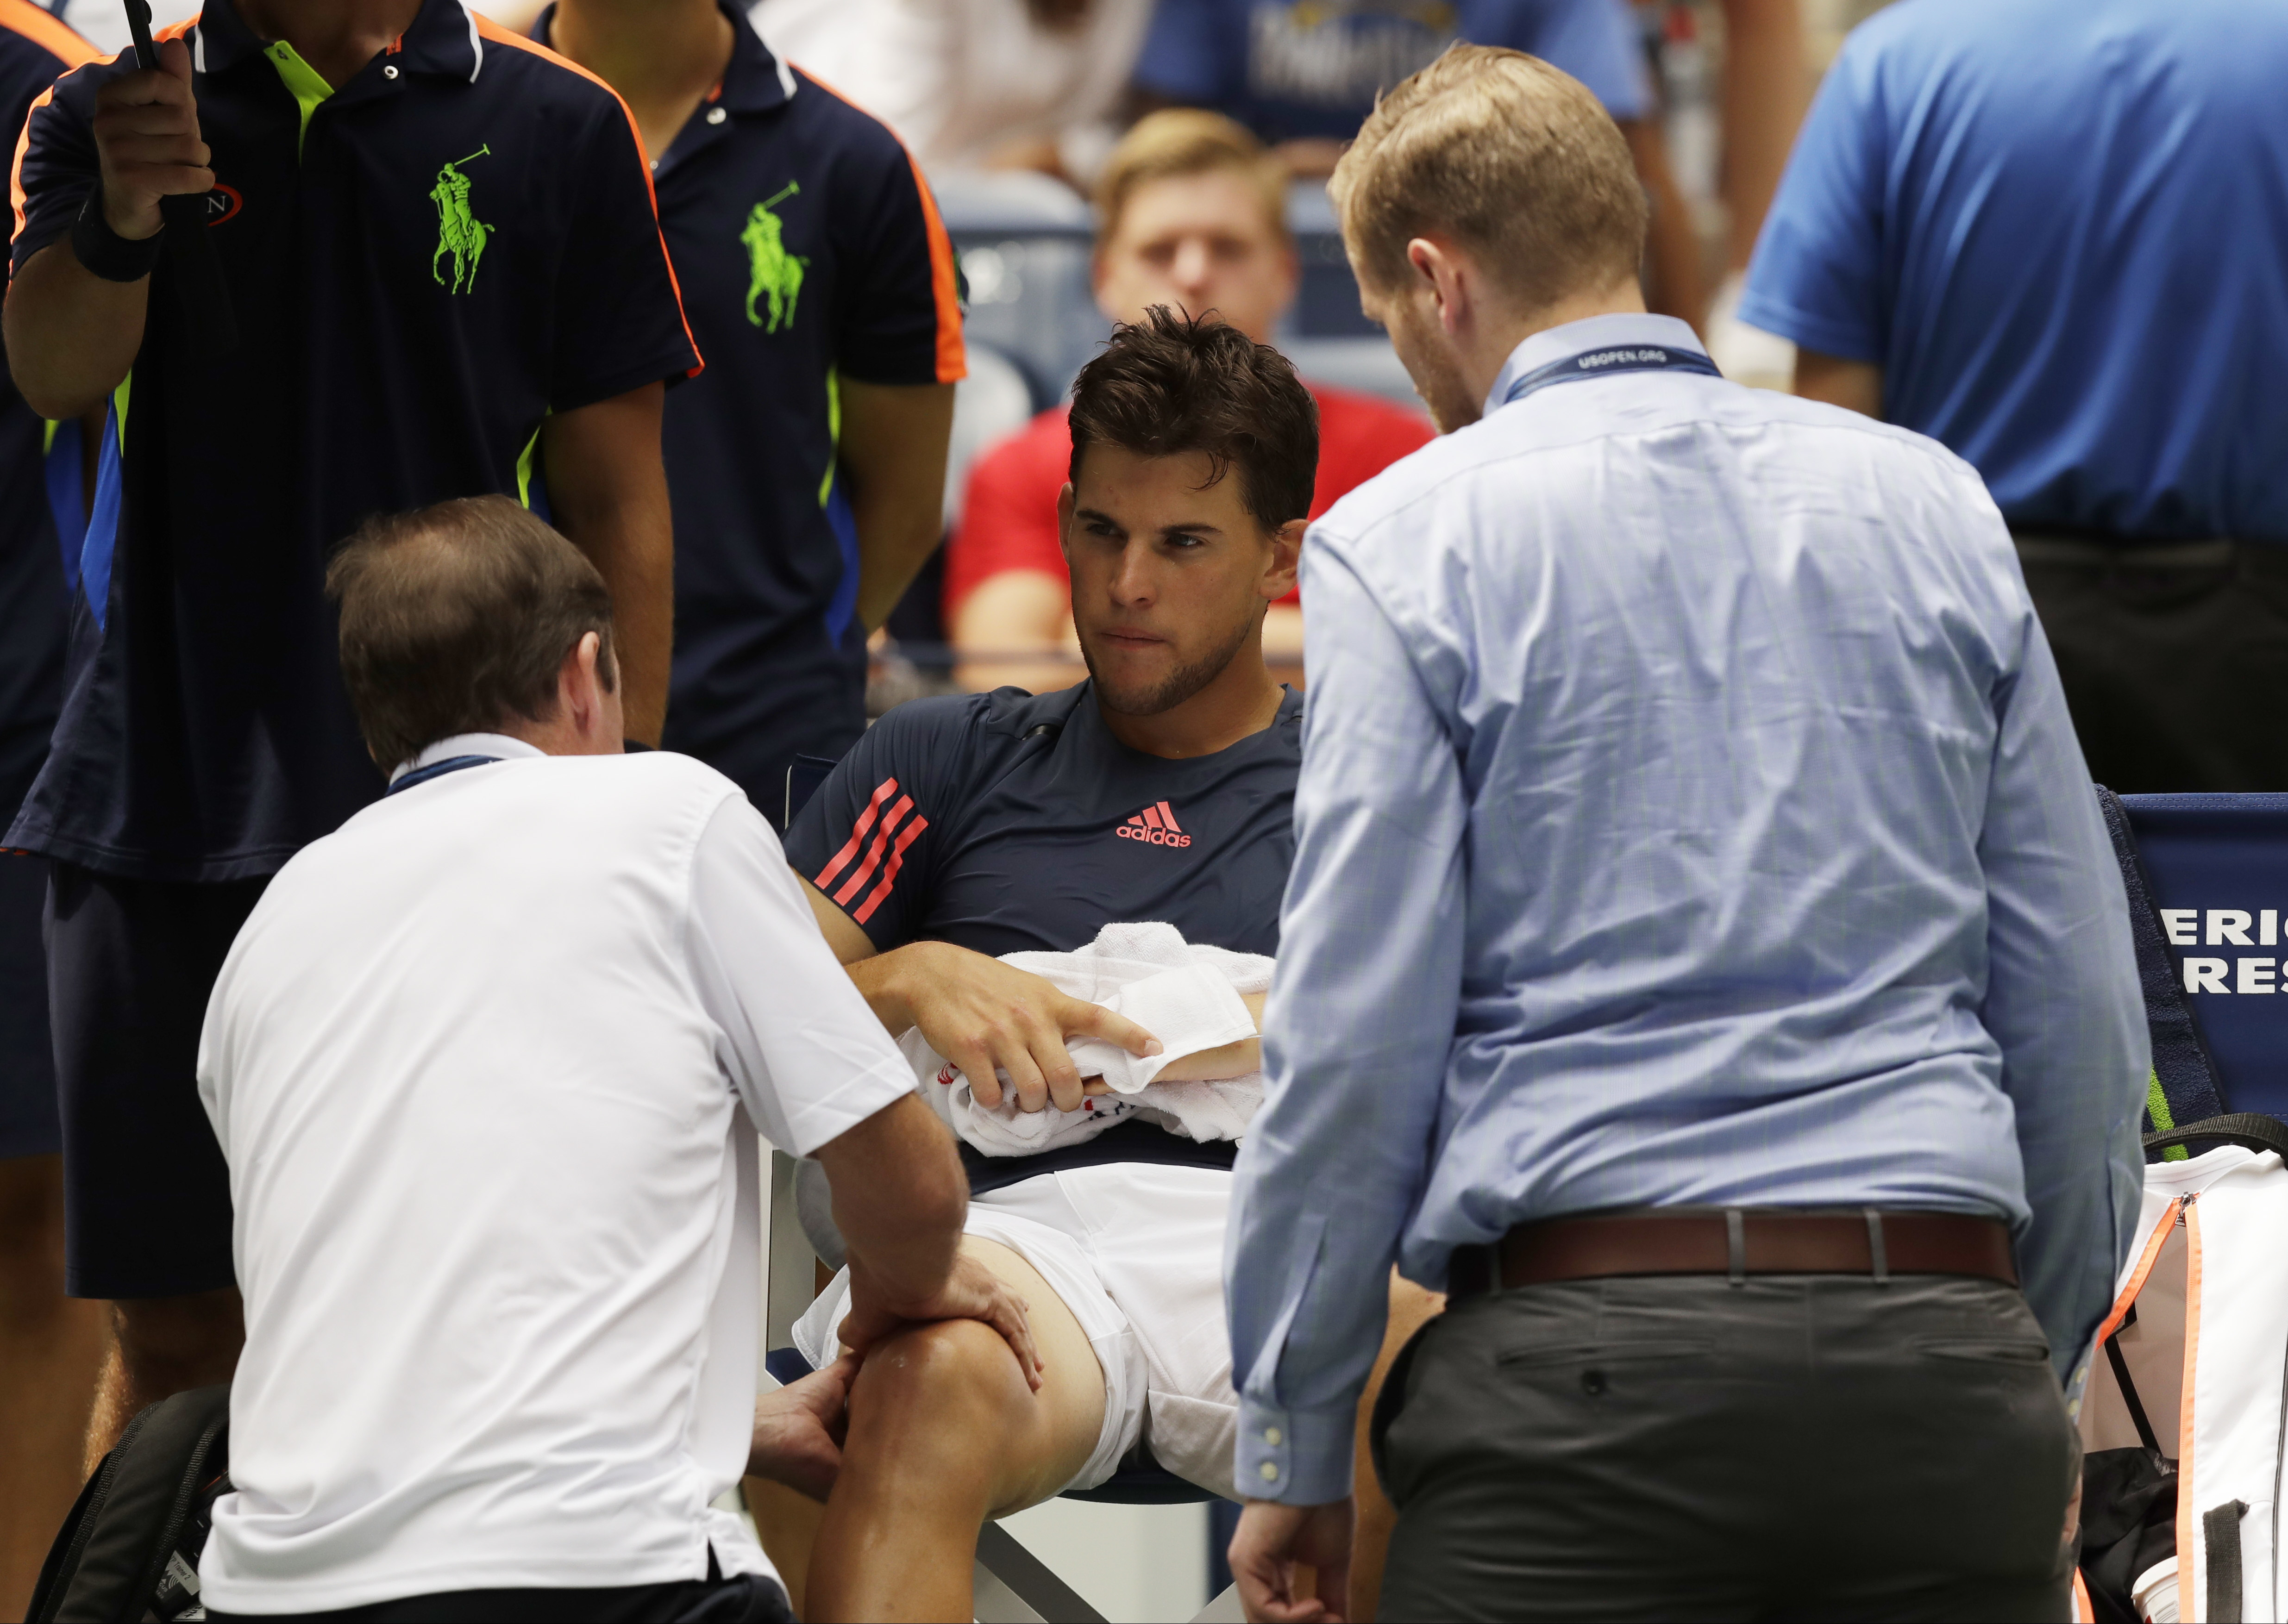 A trainer works on the right leg of Dominic Thiem, of Austria, during the fourth round of the U.S. Open tennis tournament against Juan Martin del Potro, of Argentina, , Monday, Sept. 5, 2016, in New York. (AP Photo/Charles Krupa)